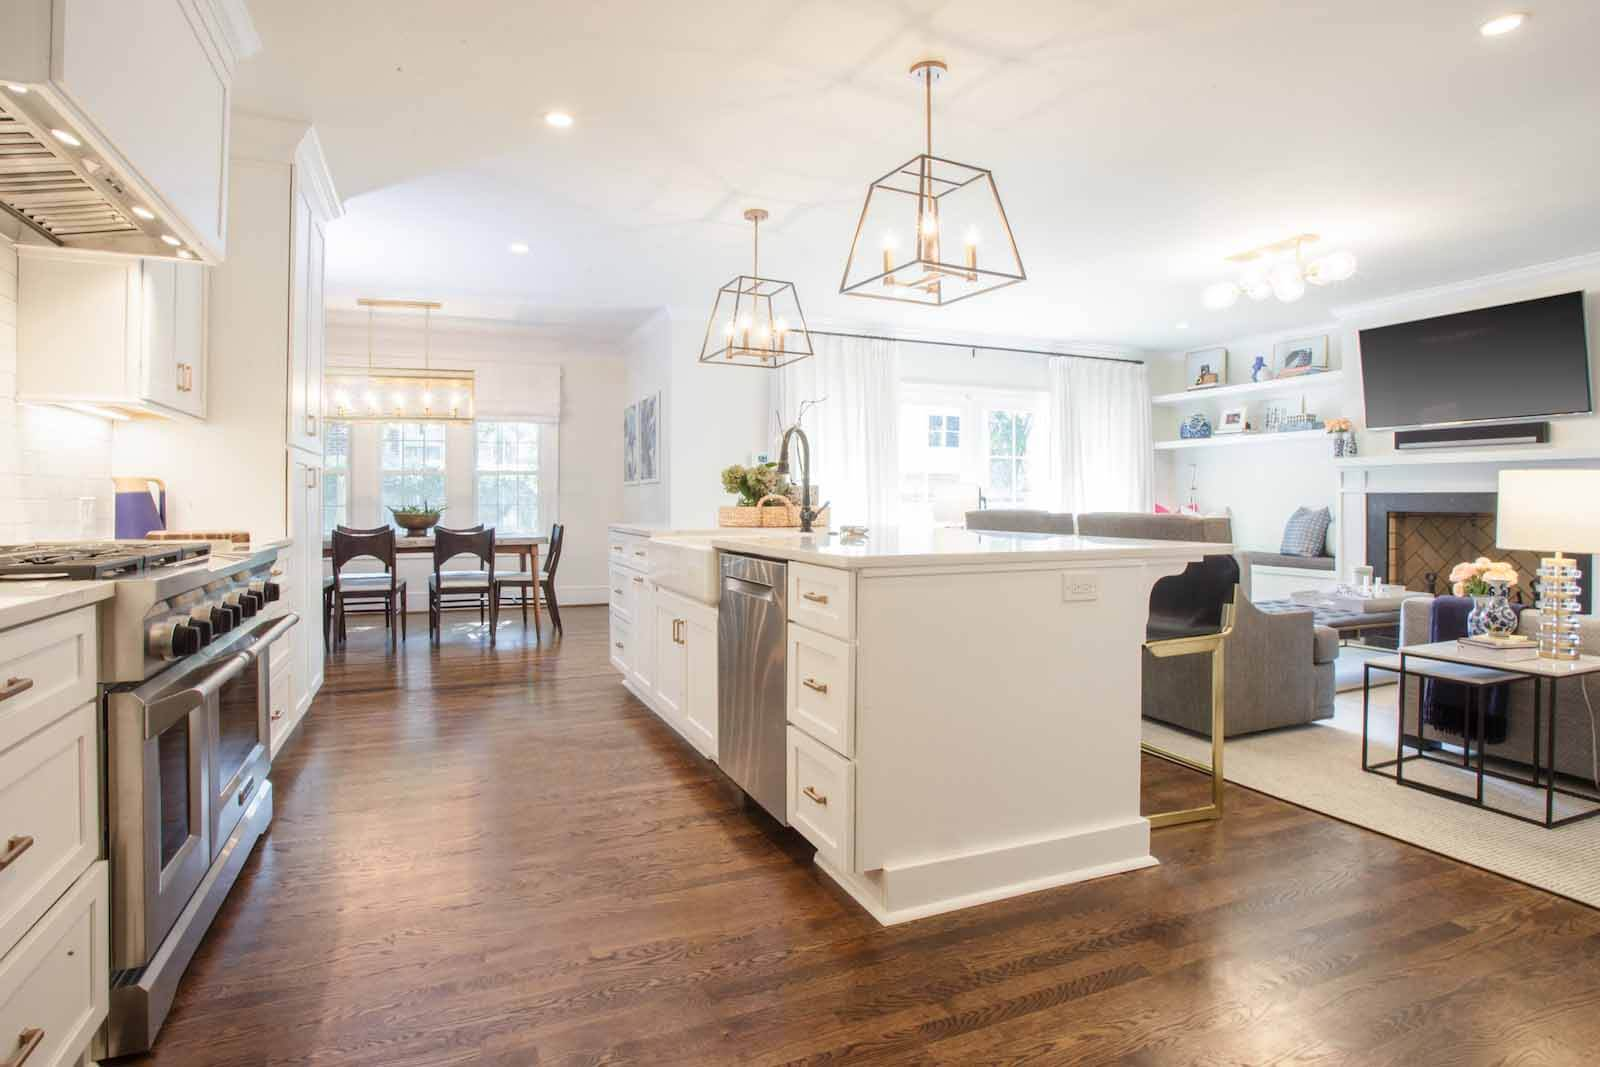 Open concept kitchen, living area and dining room